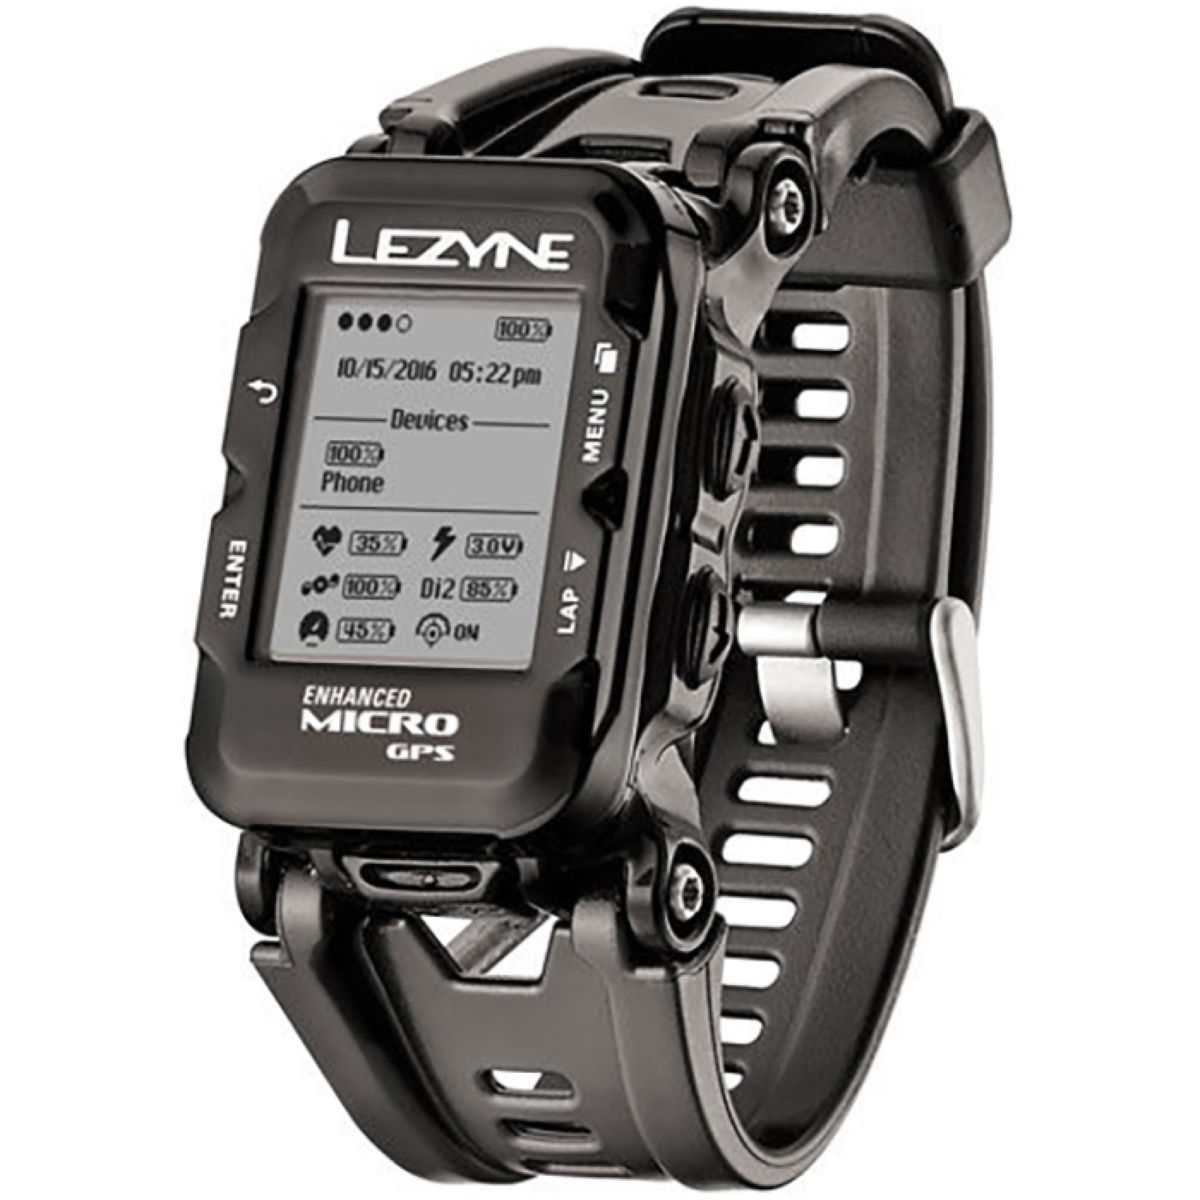 Lezyne Micro GPS Watch with Mapping